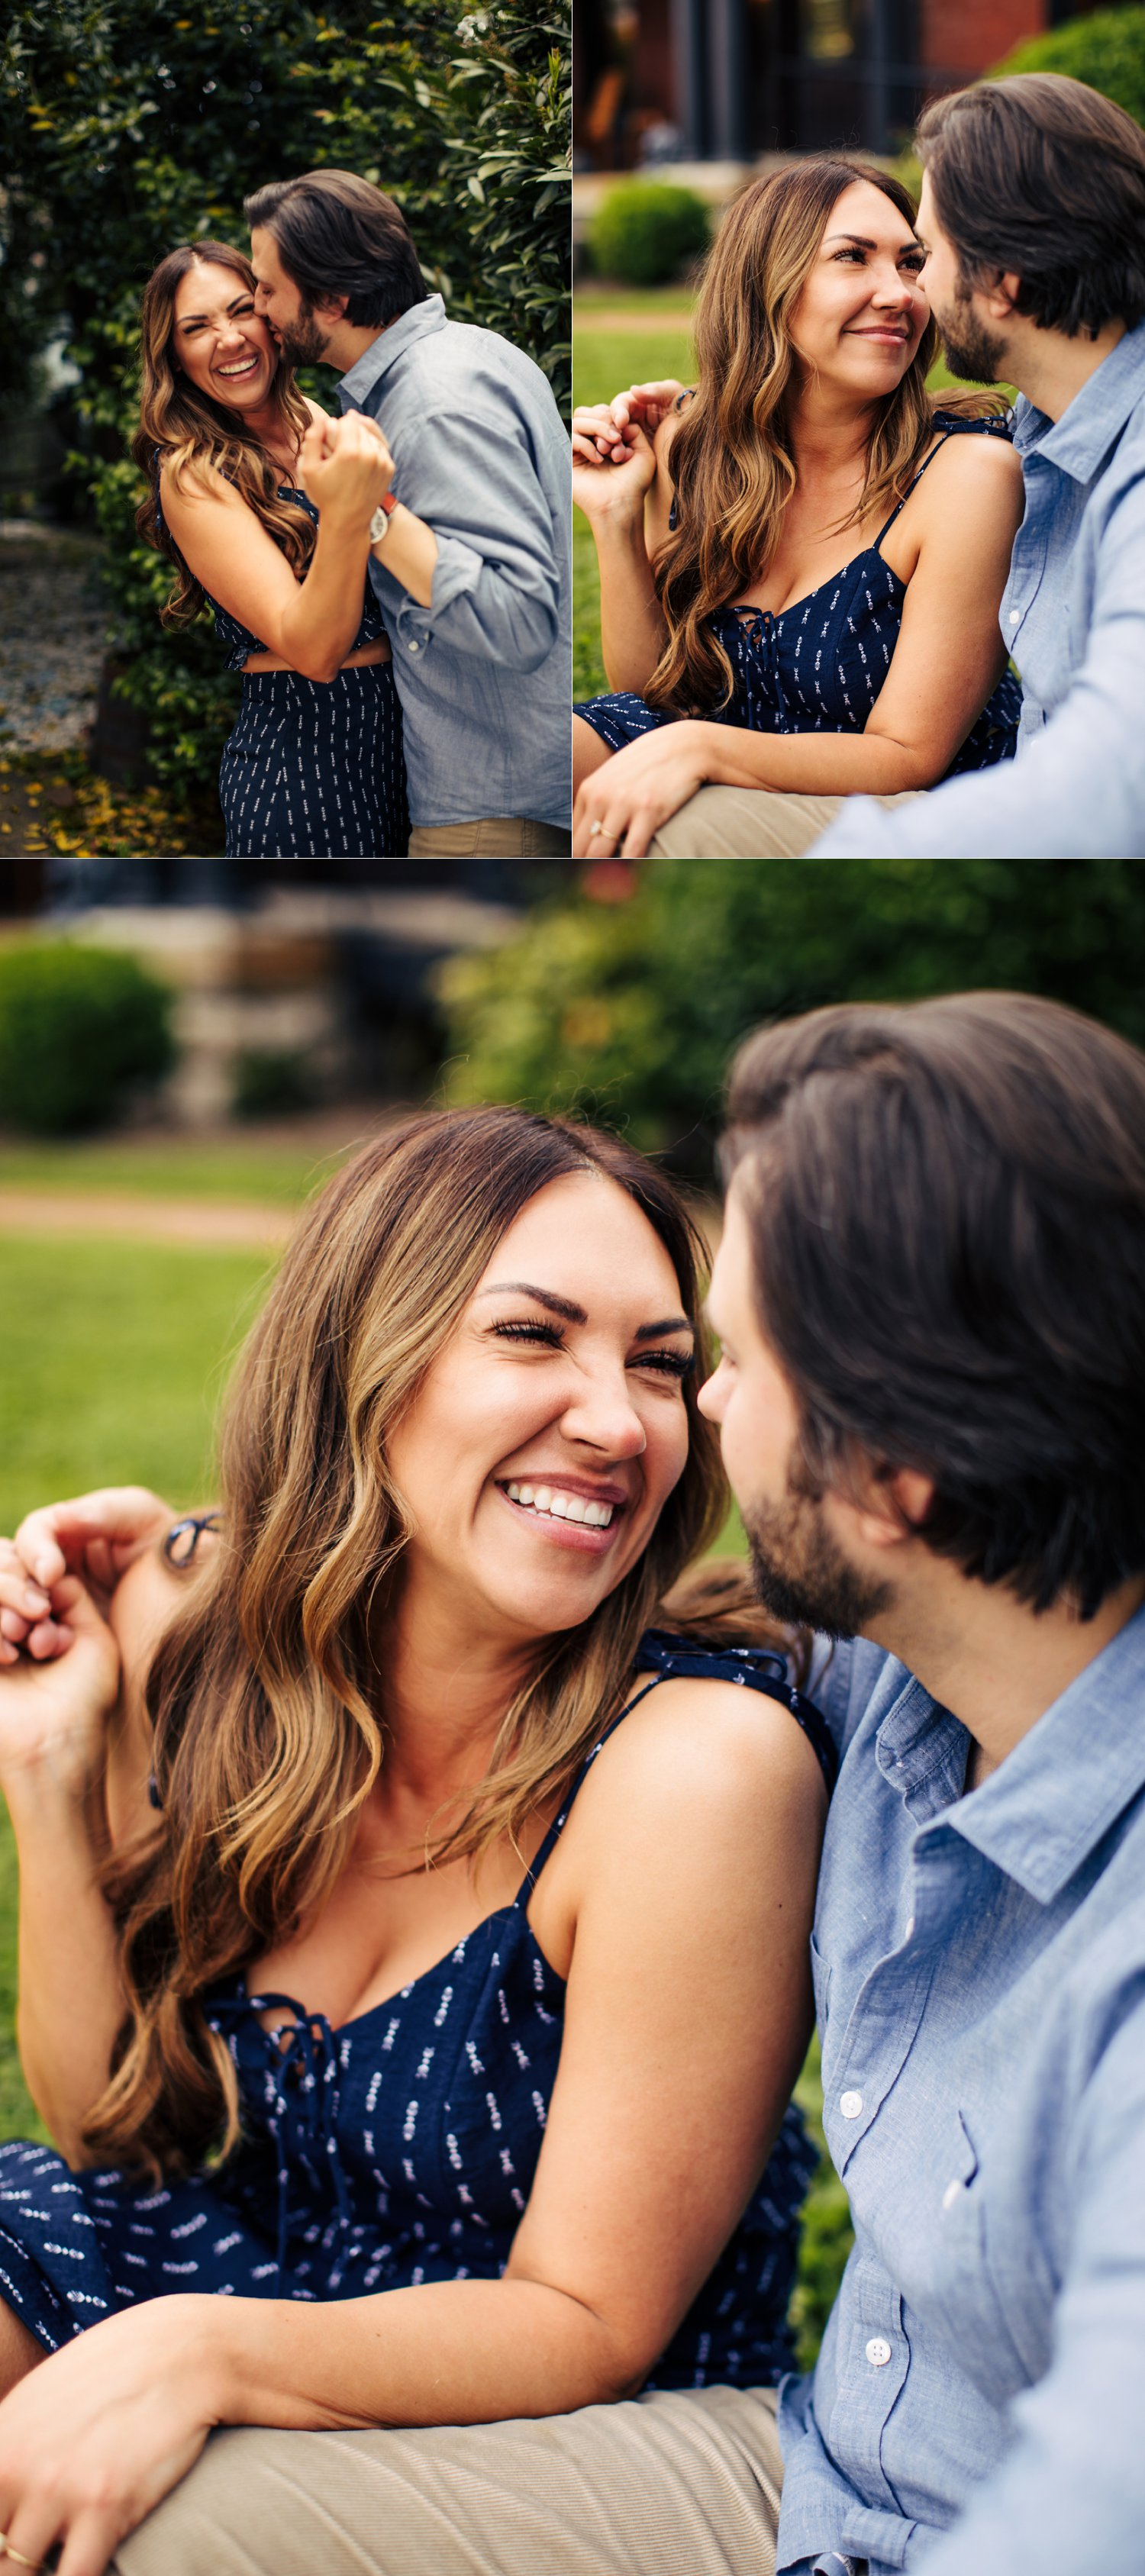 CK-Photo-Nashville-engagement-wedding-photographer-urban-cowboy